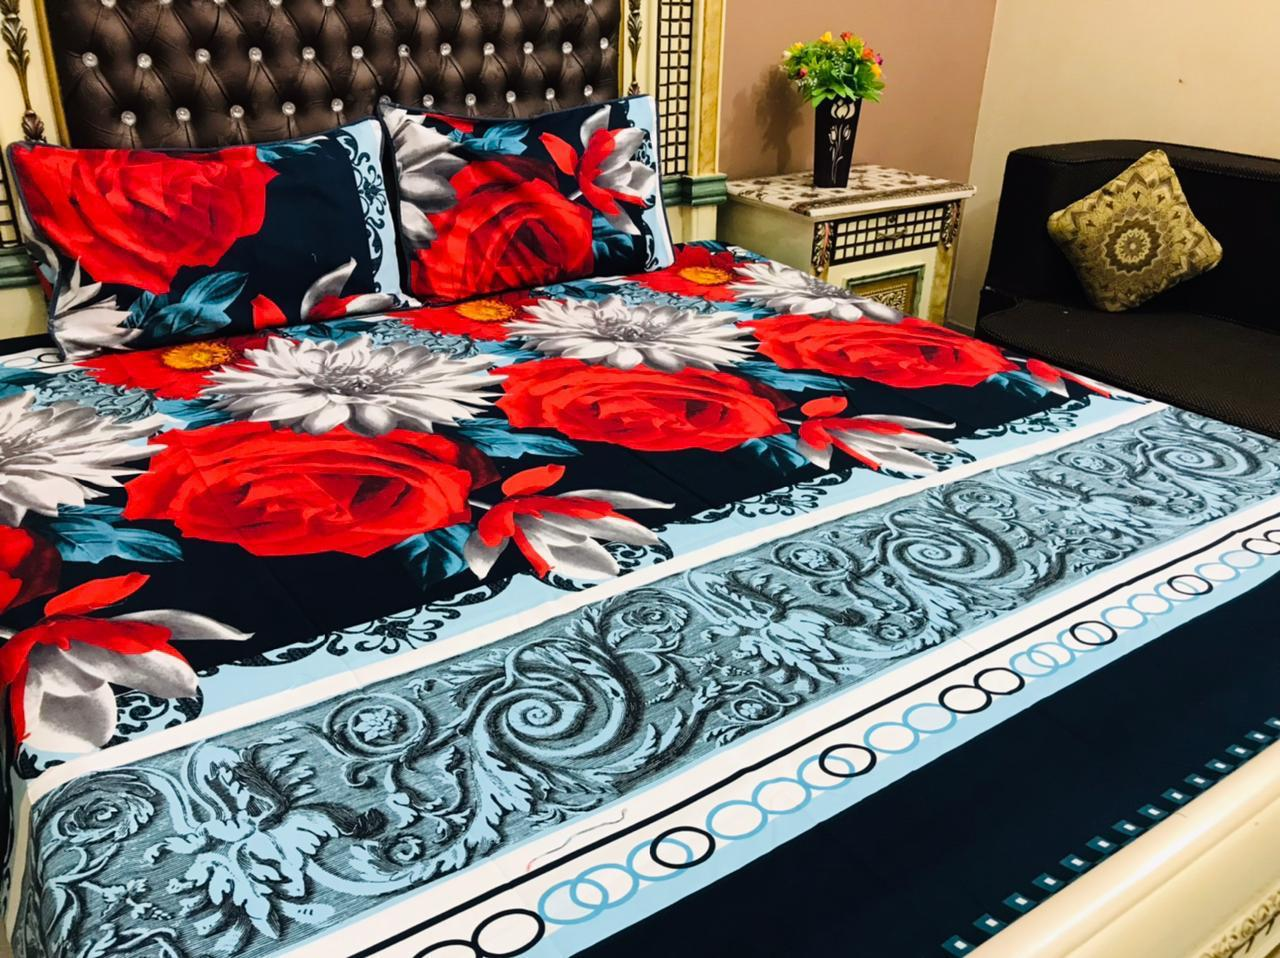 3D-Crystal Cotton Bedsheets By pillowberry studio Fabric👉🏻 Crystal cotton 💯 ❤️Colour and Fabric Life Time Guaranteed😇 3pc Bedsheet Size👇🏻👇🏻👇🏻👇🏻👇🏻👇🏻👇🏻 ✅ 1 Bedsheet Size 89/95 ✅ 2 Pipping Pillows Cover 19/29 Wholesale Rate For Resellers and Shopkeepers 850*fix NOTE 👉🏻Colour and Stuff LifeTime Guaranteed👈🏻